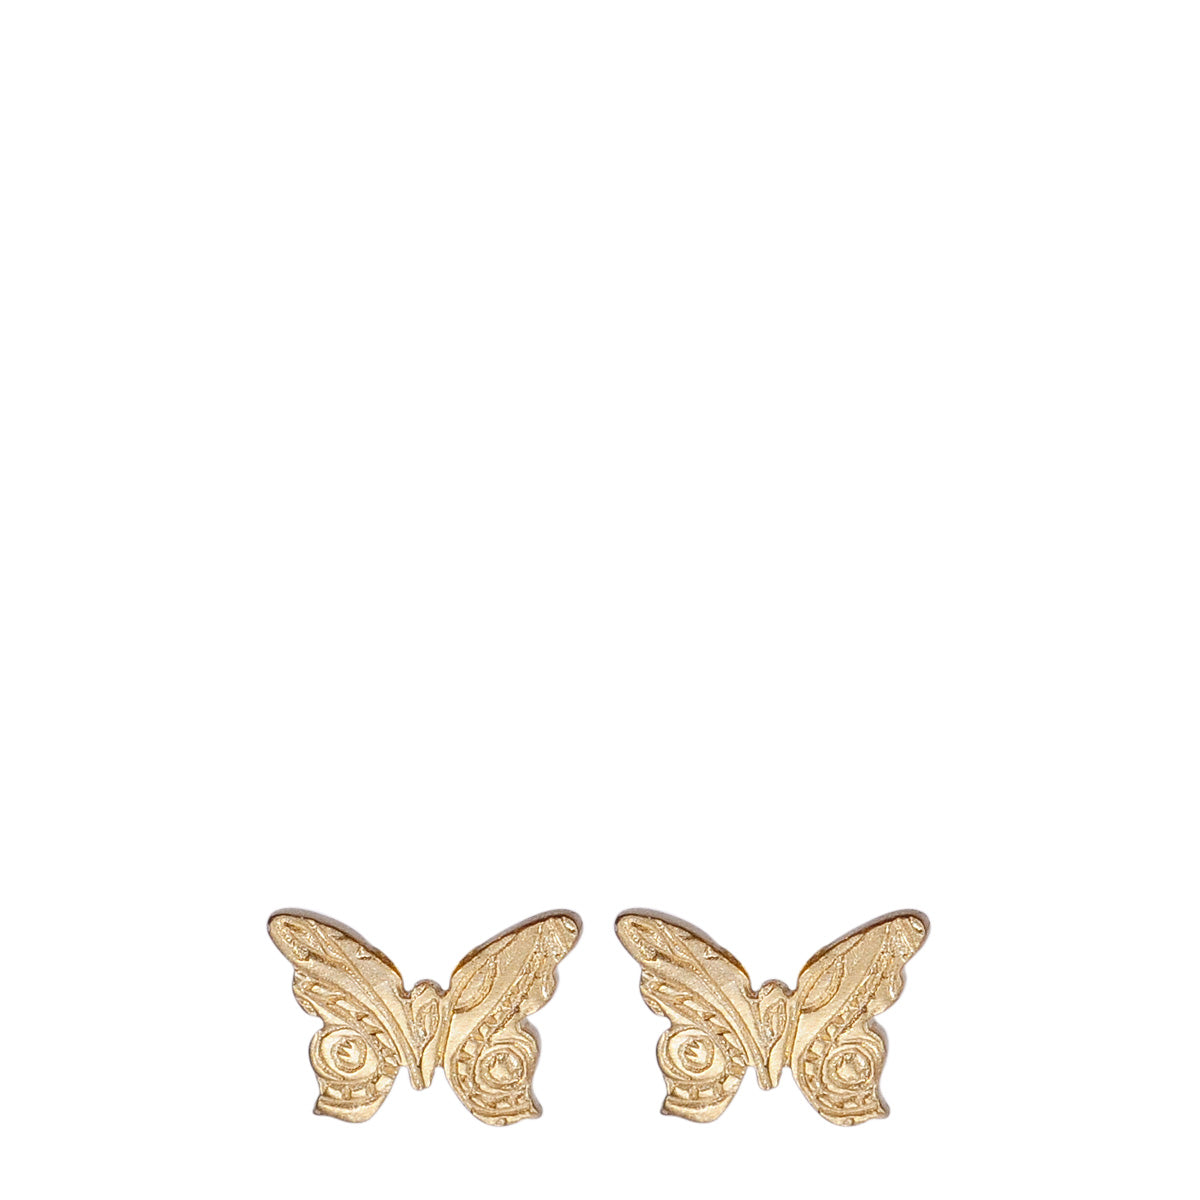 10K Gold Small Paisley Butterfly Stud Earrings